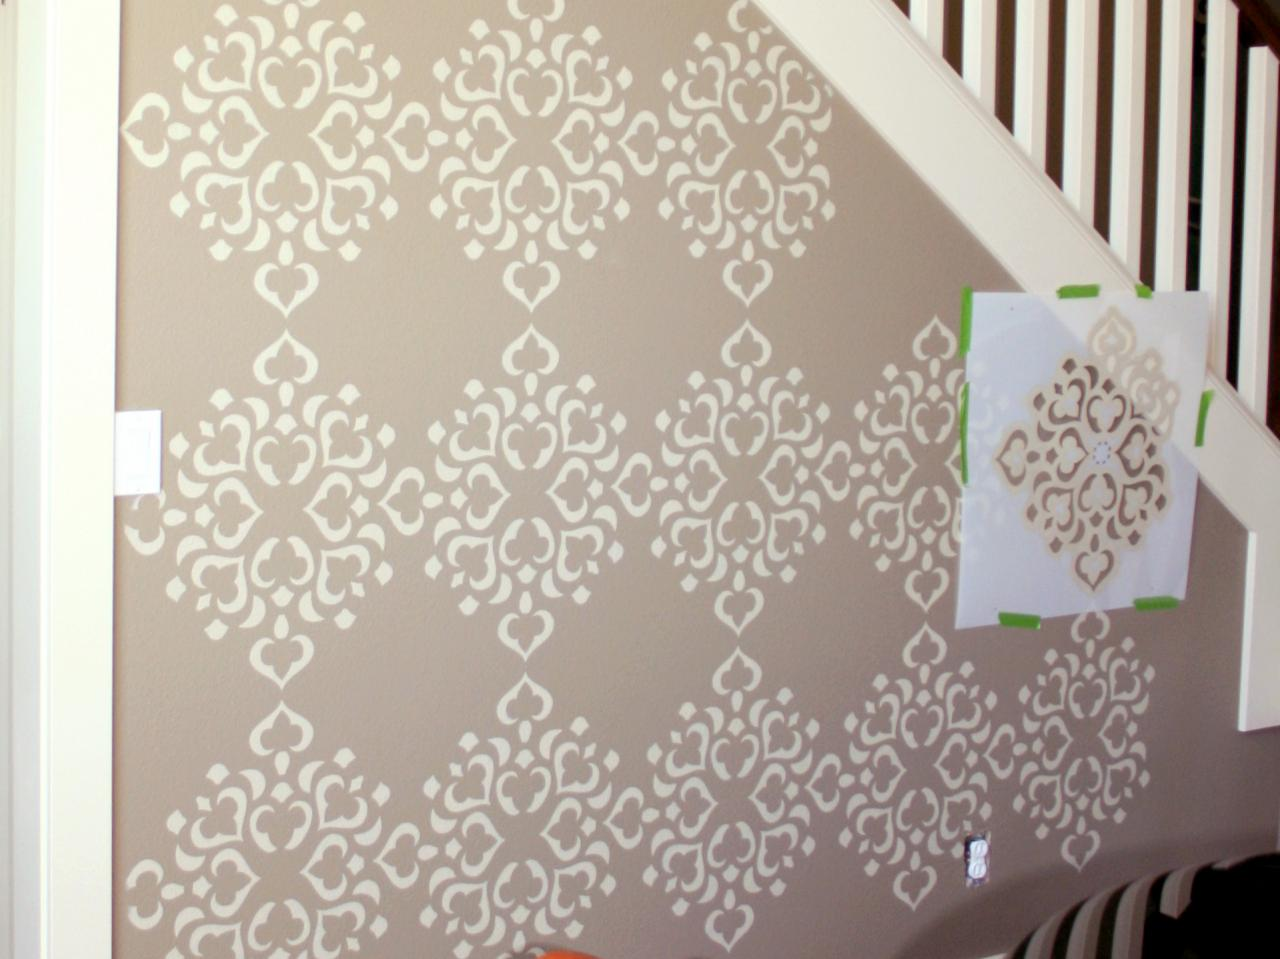 Merveilleux Wall Stencils Extend Design To Wall Edges UGPXKZL